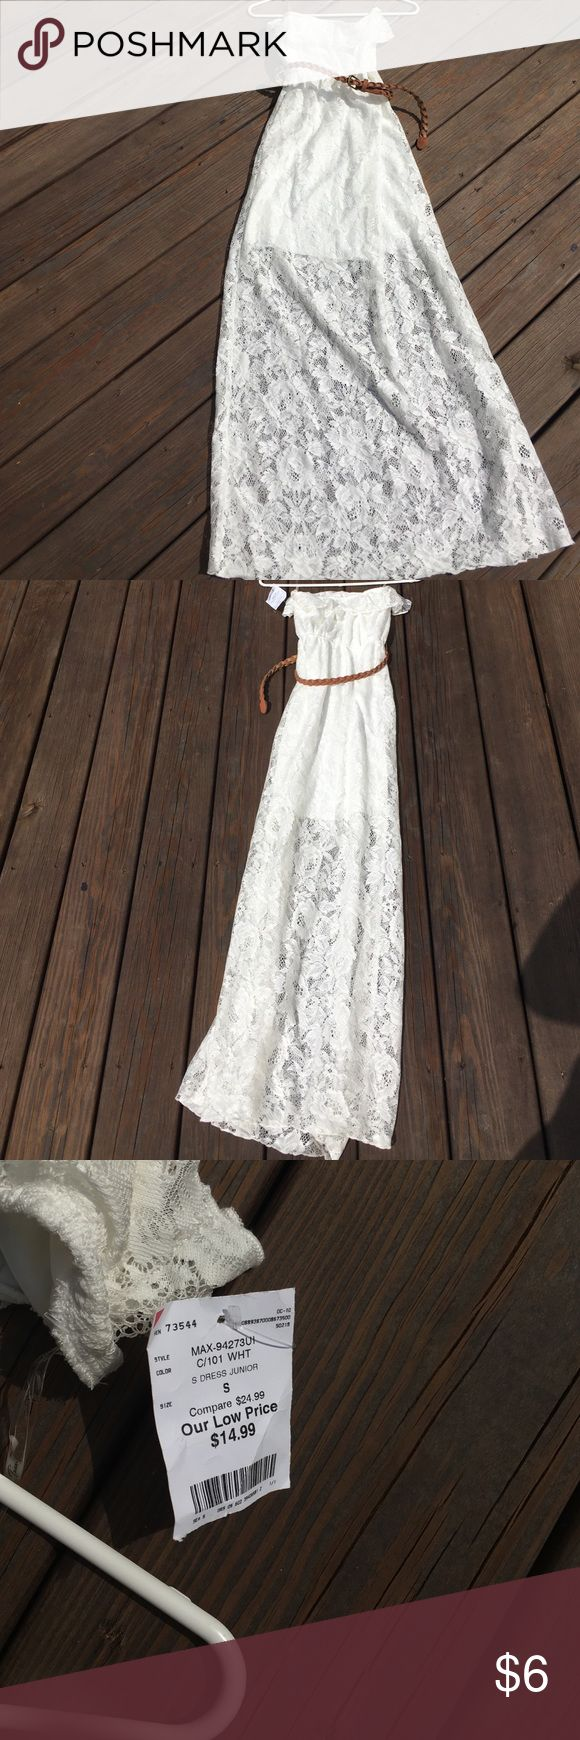 TRIXXI WHITE LACE DRESS DRESS W BELT  S (juniors) TRIXXI WHITE LACE STRAPLESS DRESS WITH BELT SIZE S (juniors). Trixxi Dresses Strapless